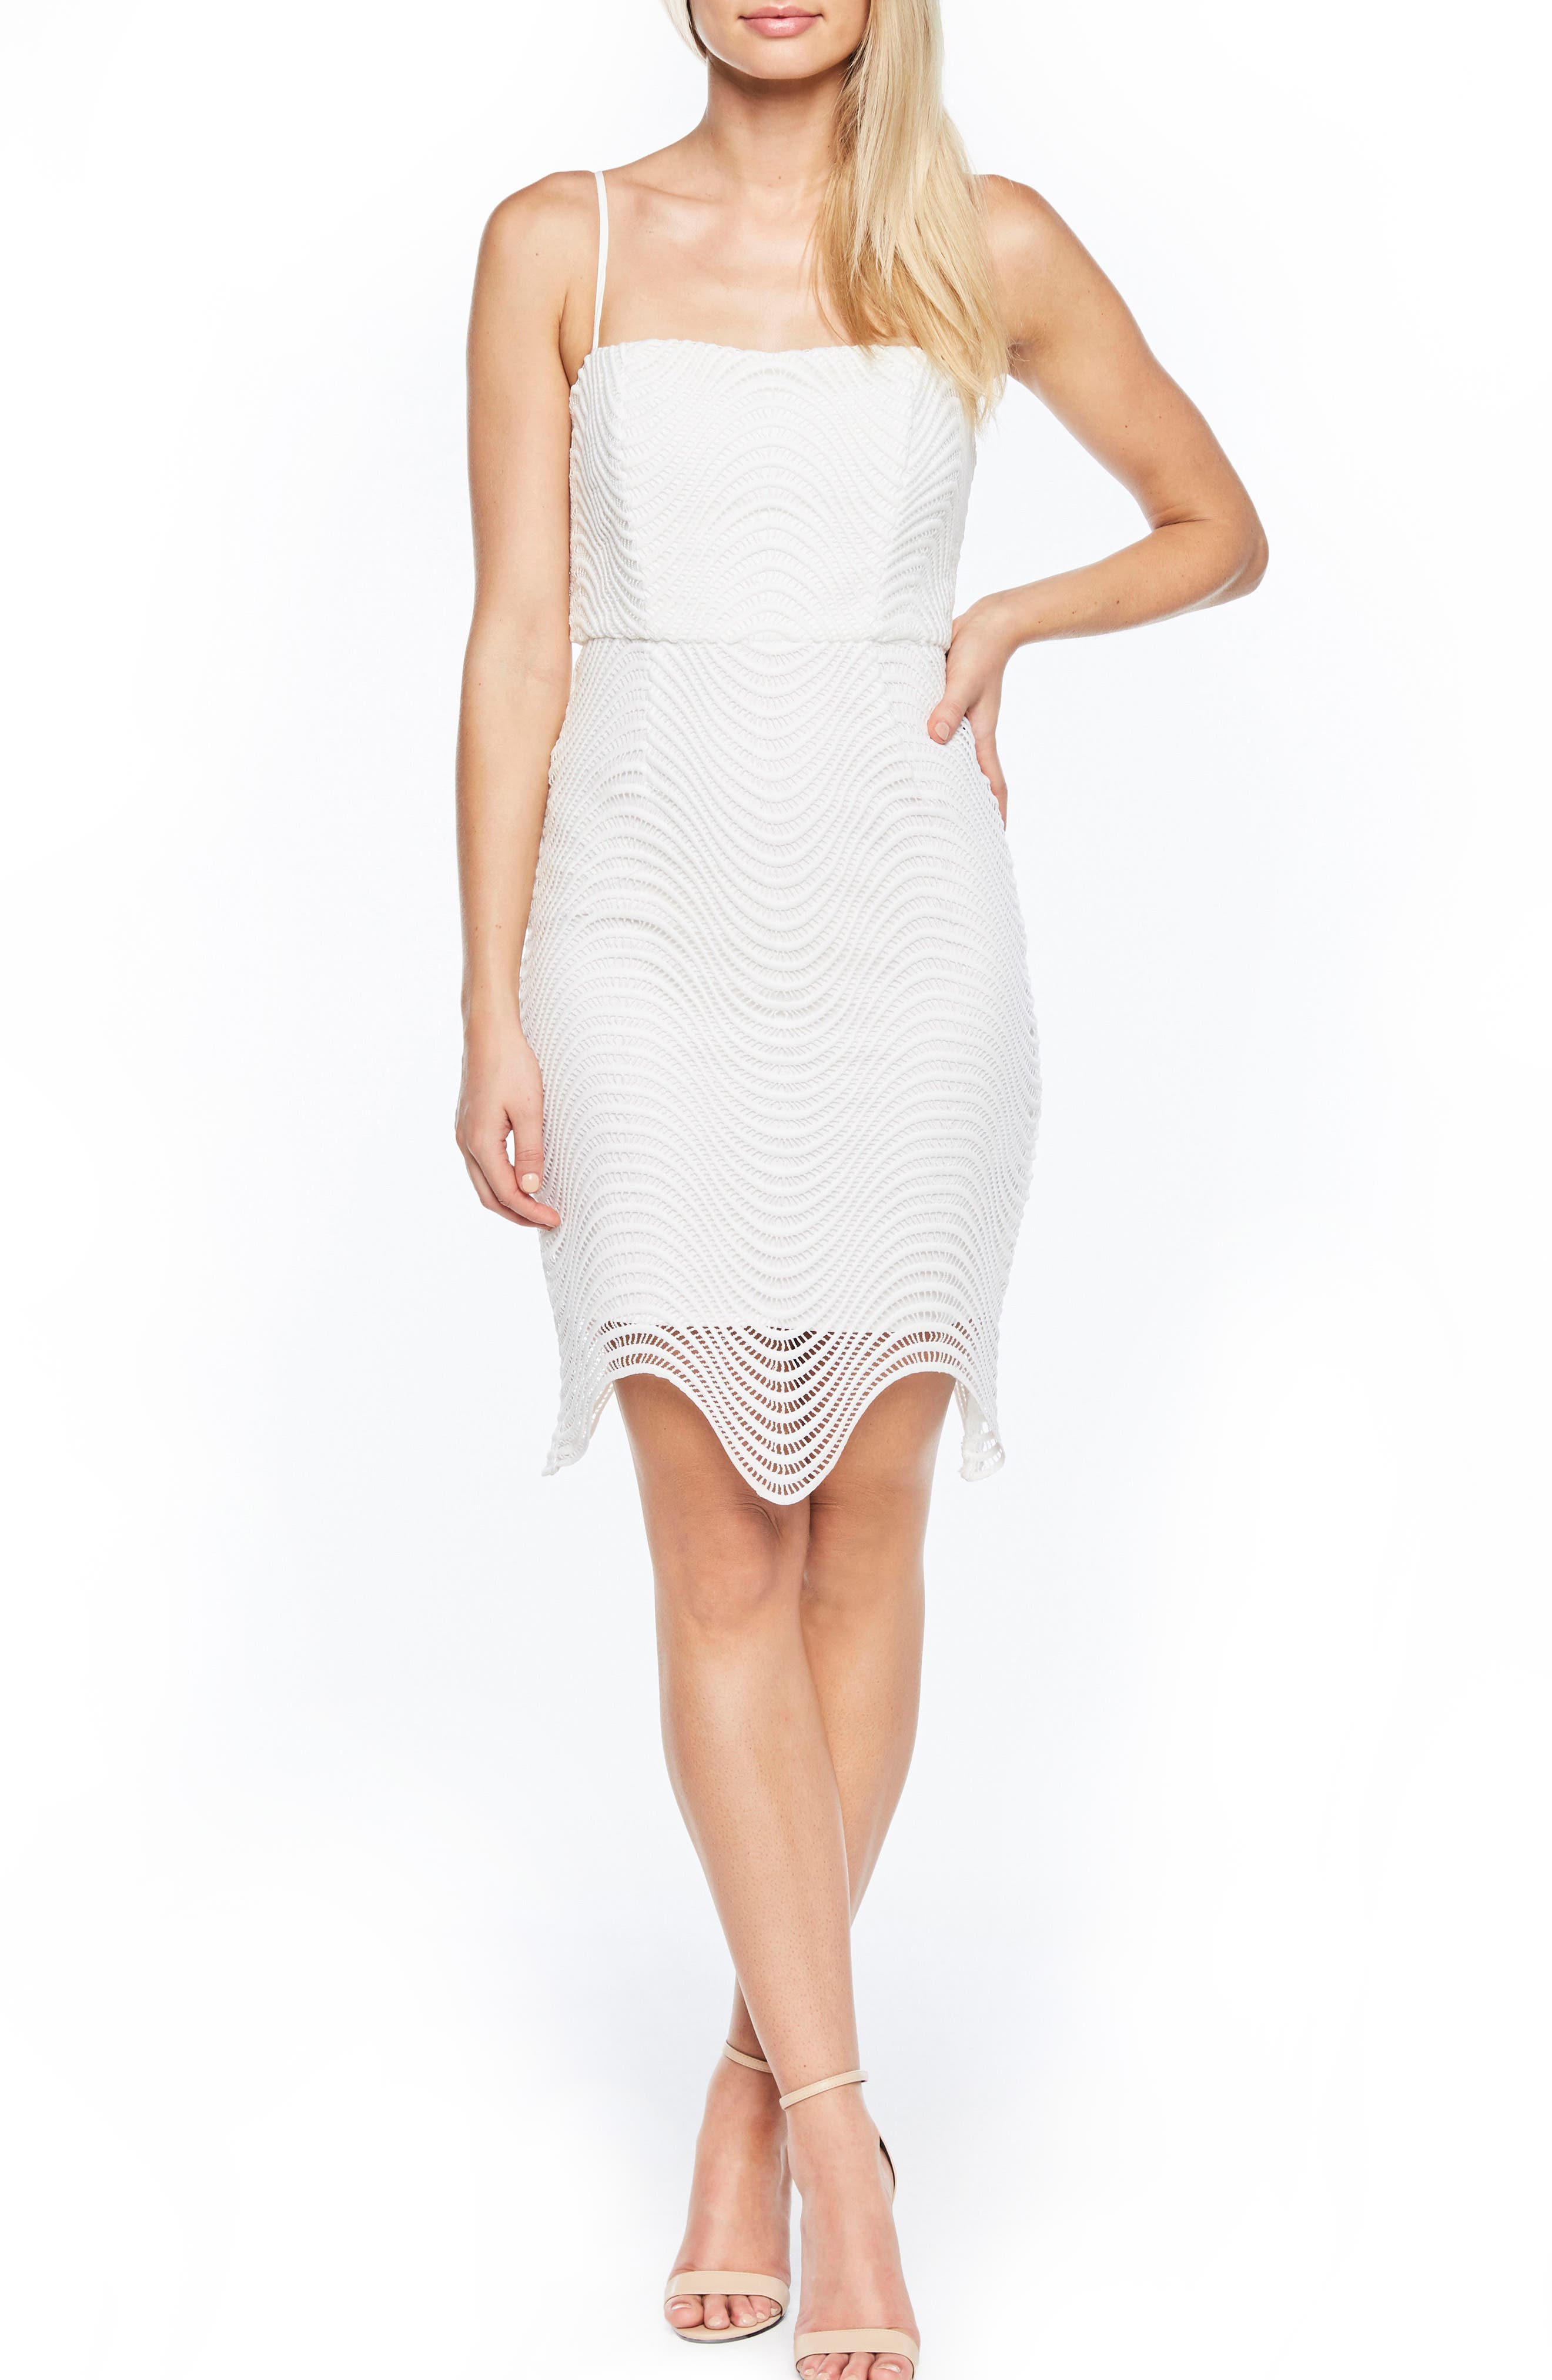 Spiral Lace Dress,                             Main thumbnail 1, color,                             Ivory